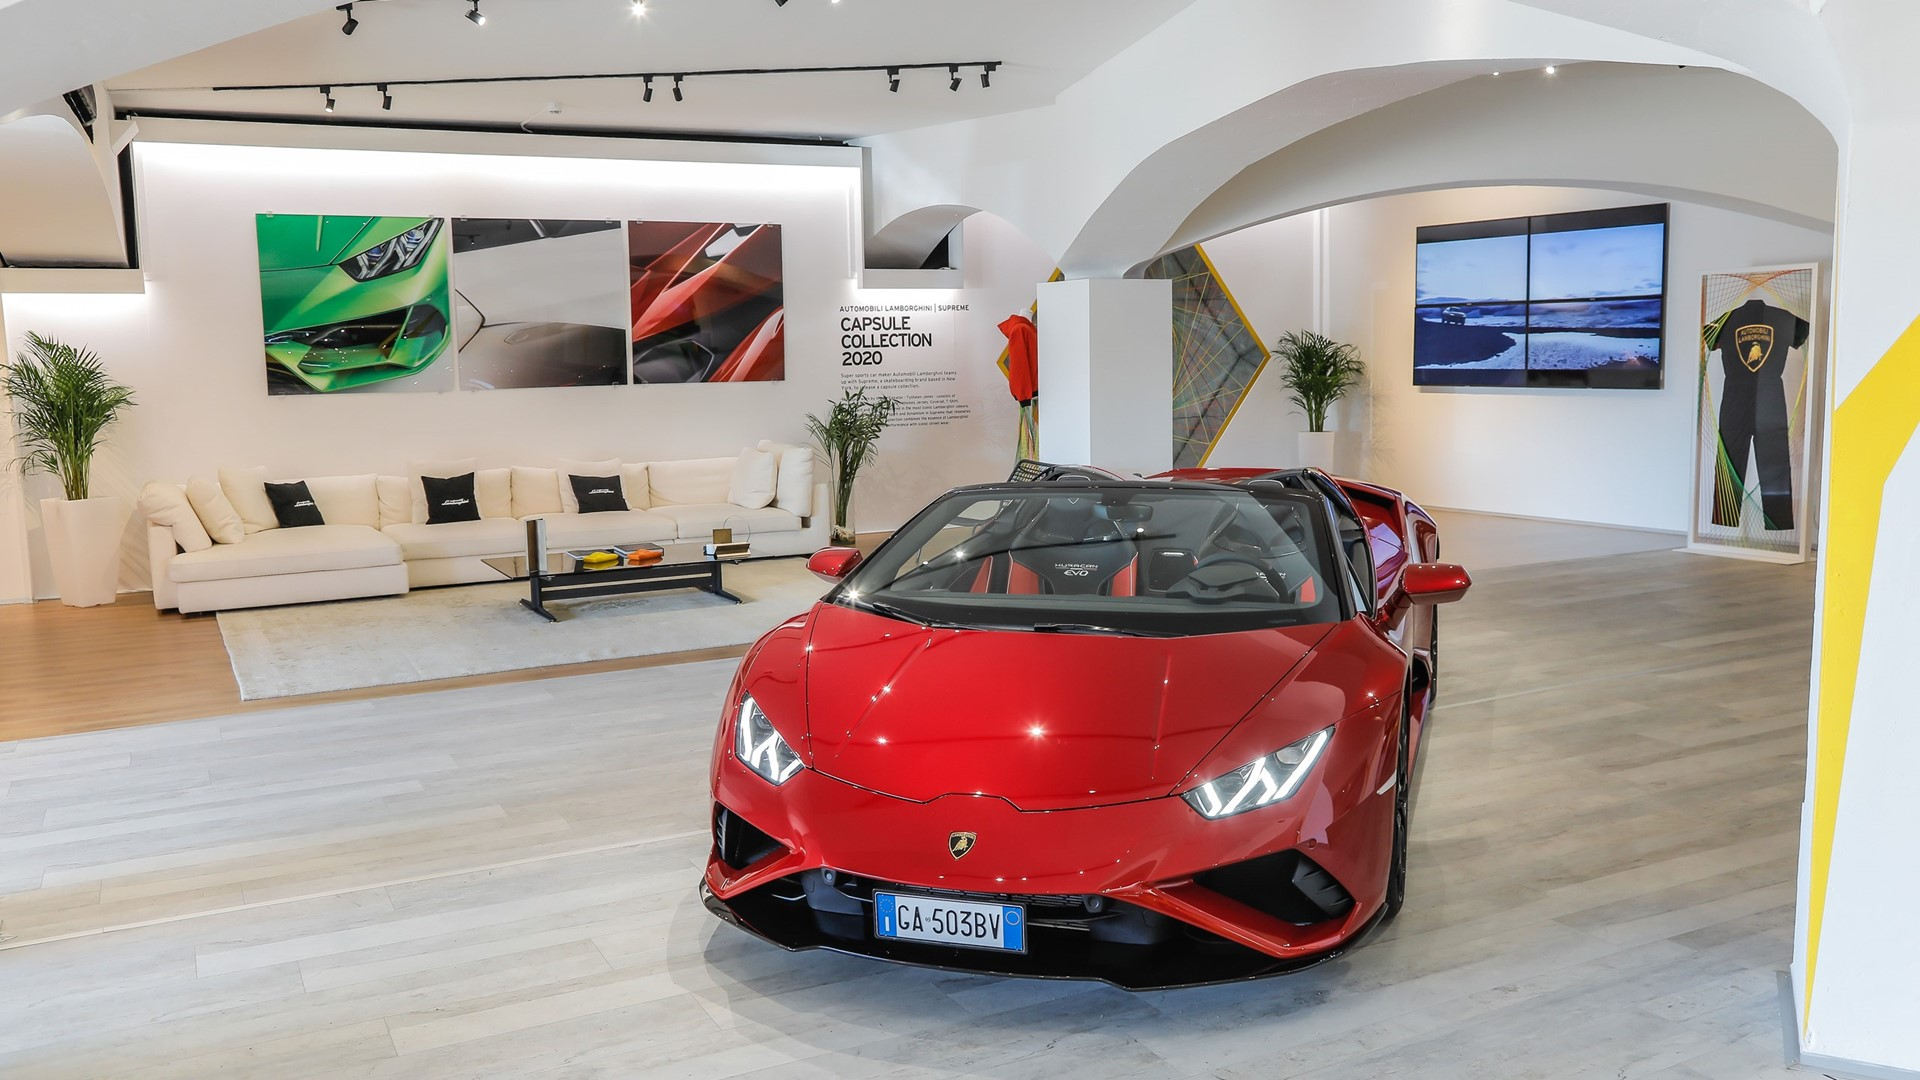 Lamborghini Lounge returns to Porto Cervo: live premier of Huracán EVO RWD Spyder with an exclusive Colours and Stars dinner by Mauro Colagreco. - Image 2